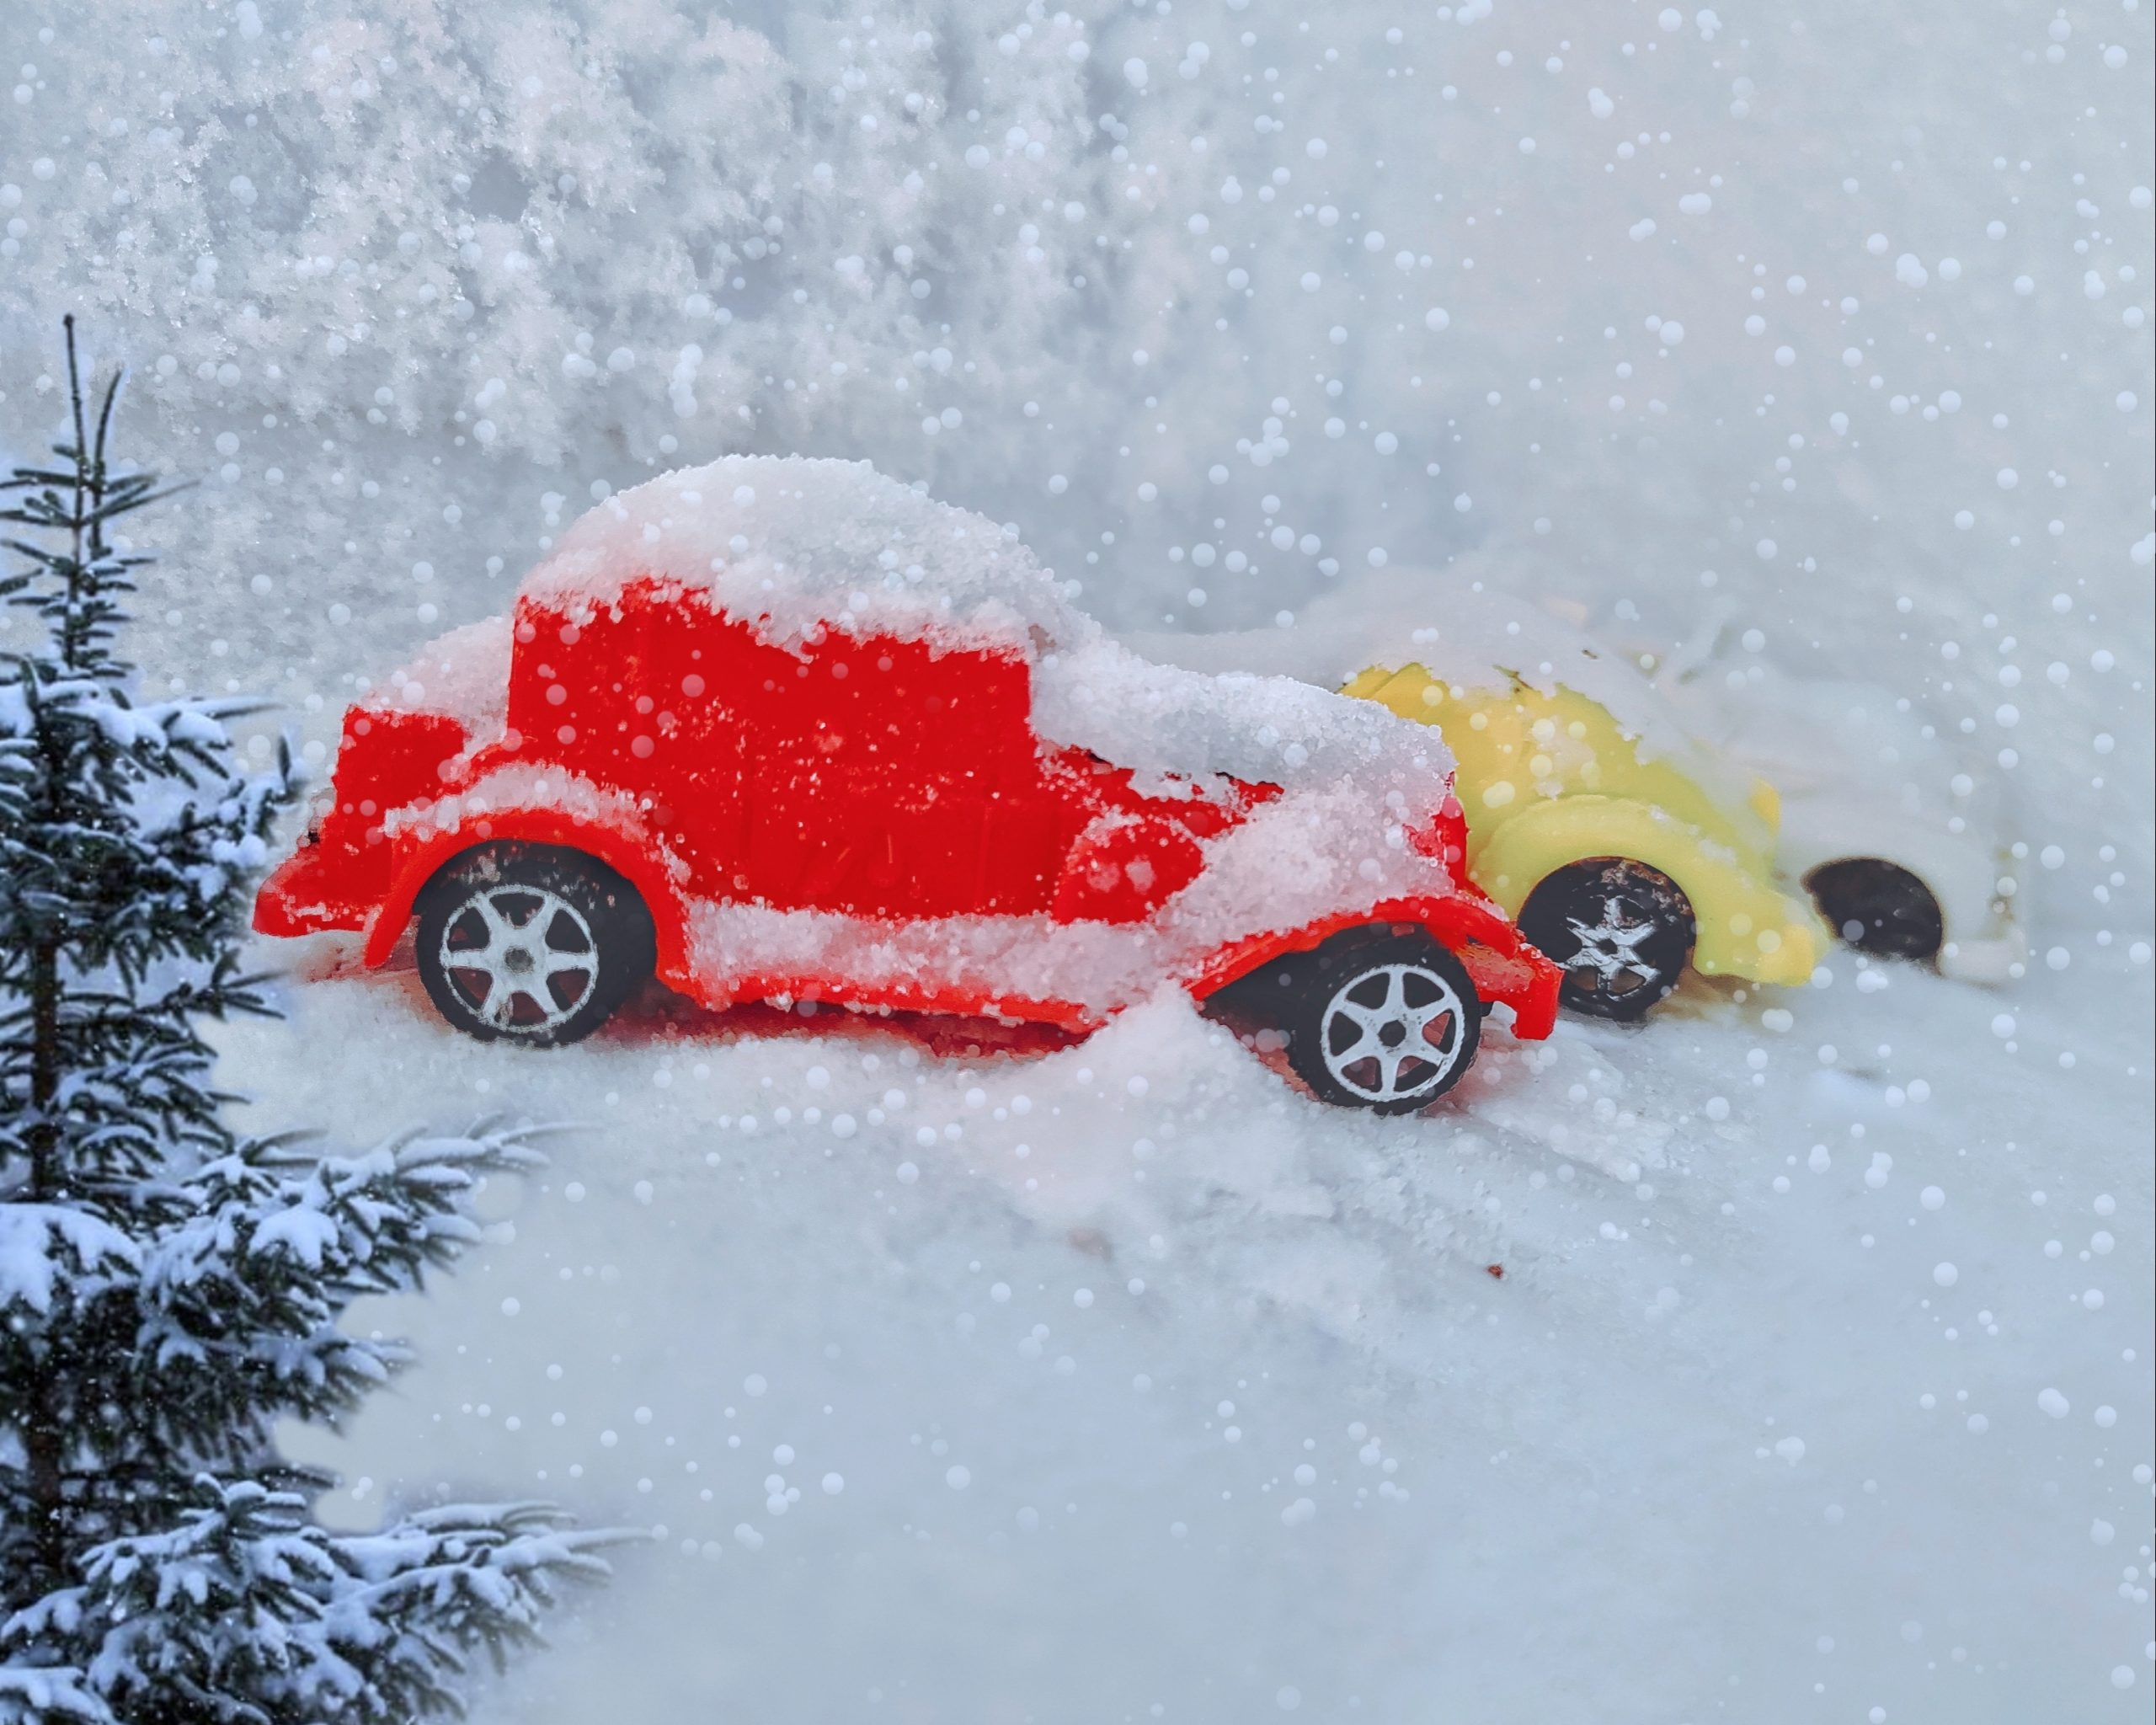 Toy cars in snowfall